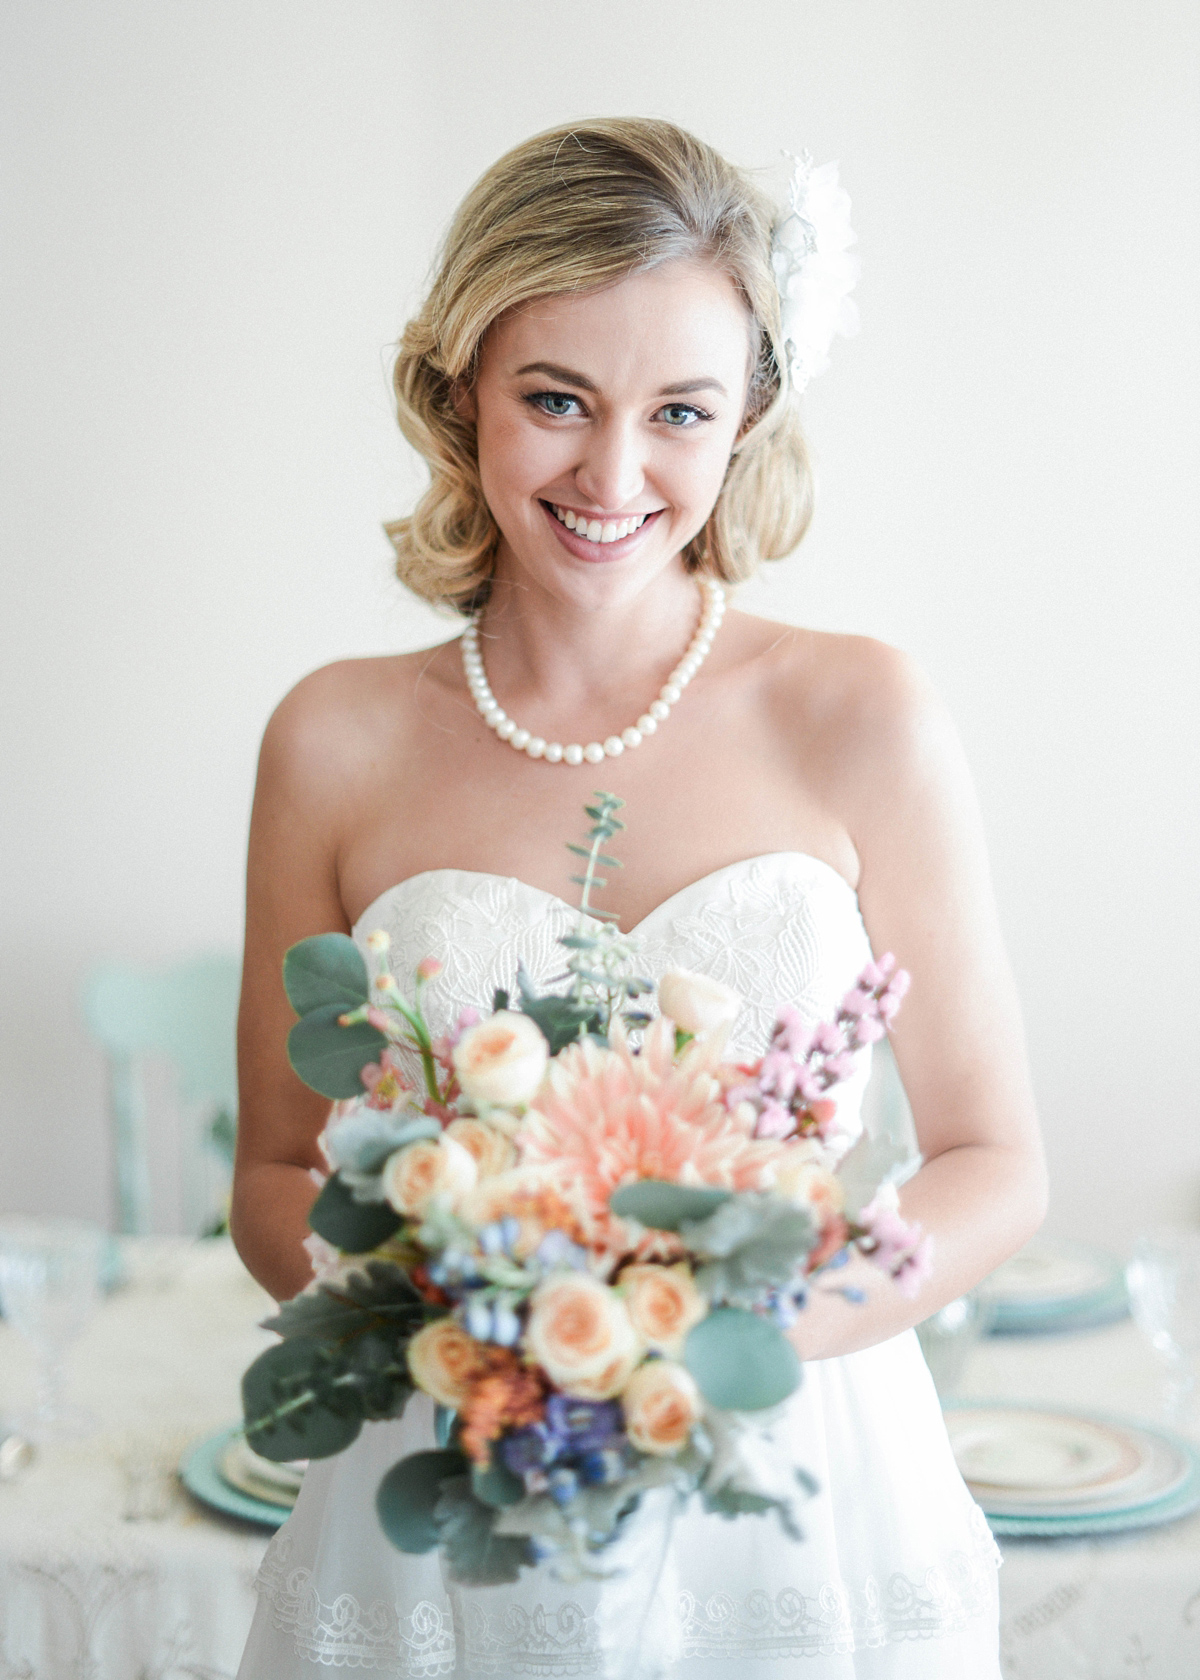 Anchored-in-Love-Spring-Focus-On-the-Coast-Weddings-Styled-Shoot-1293